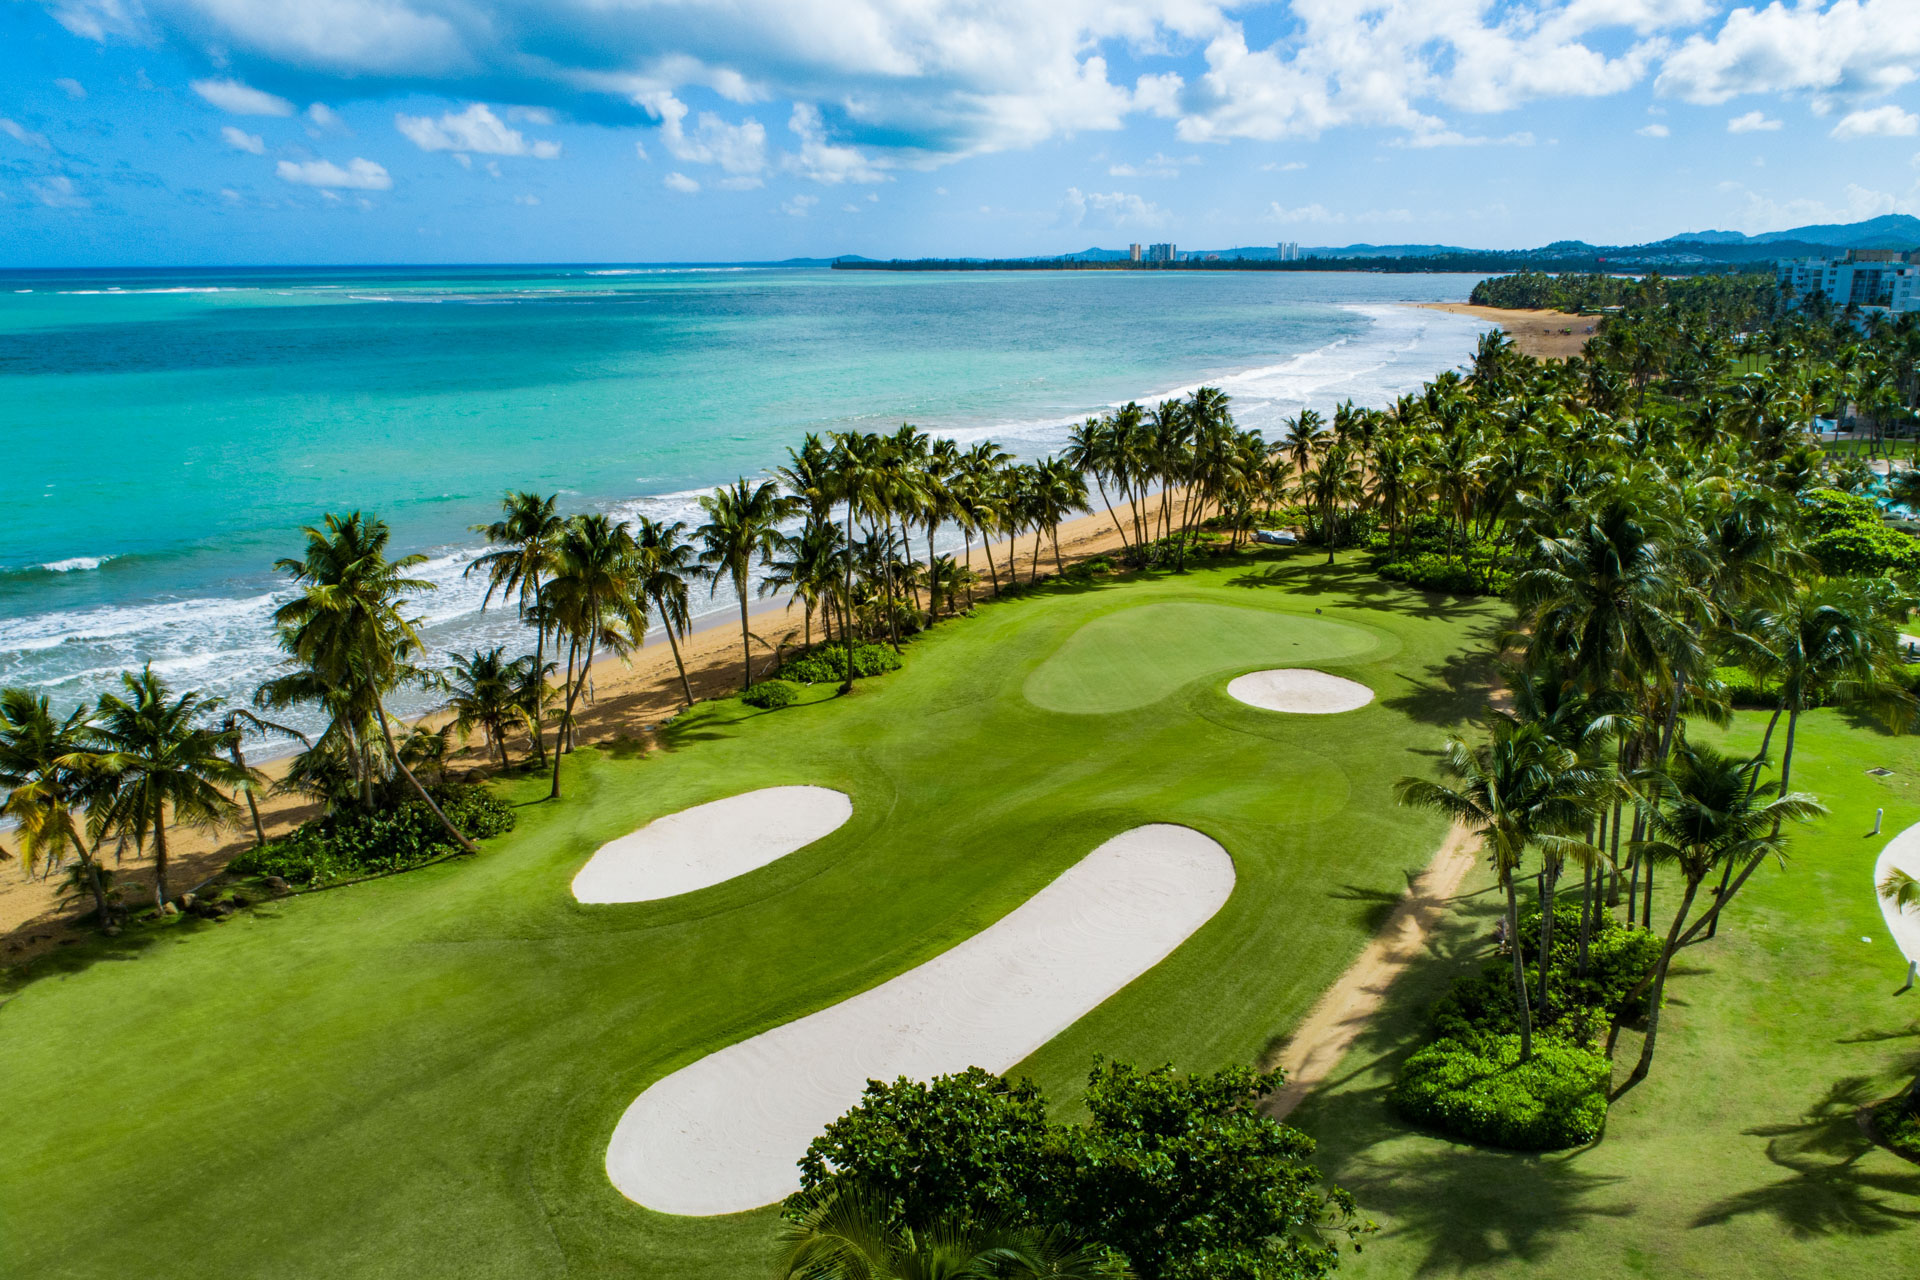 Caribbean golf delight is here!